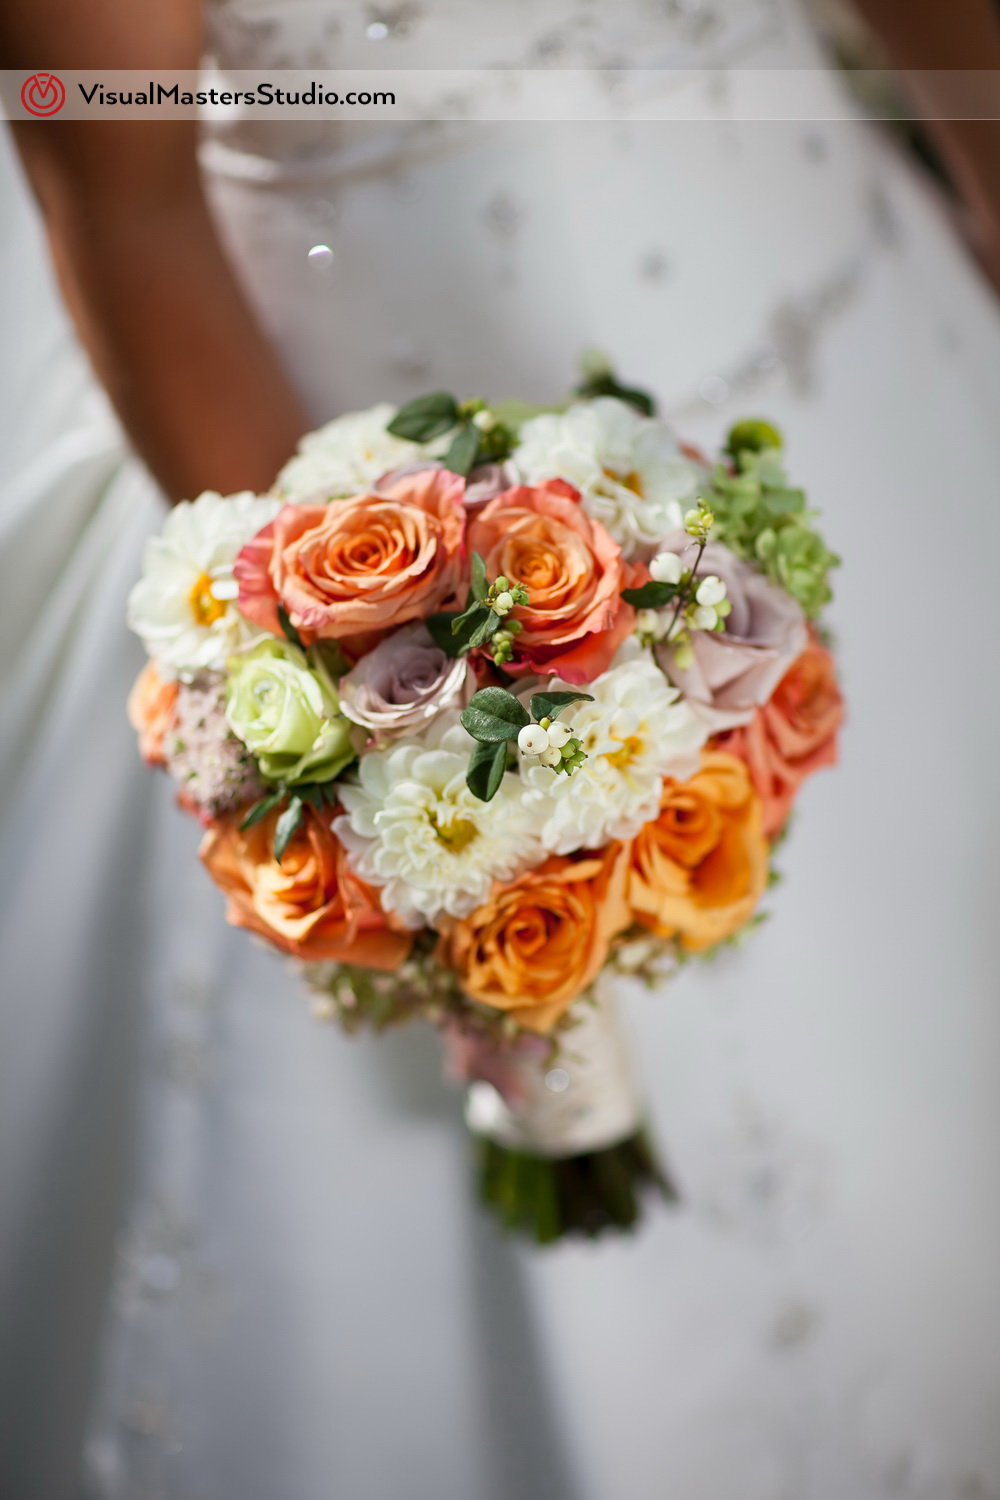 White, Orange, Pink and Green Wedding Bouquet by Visual Masters